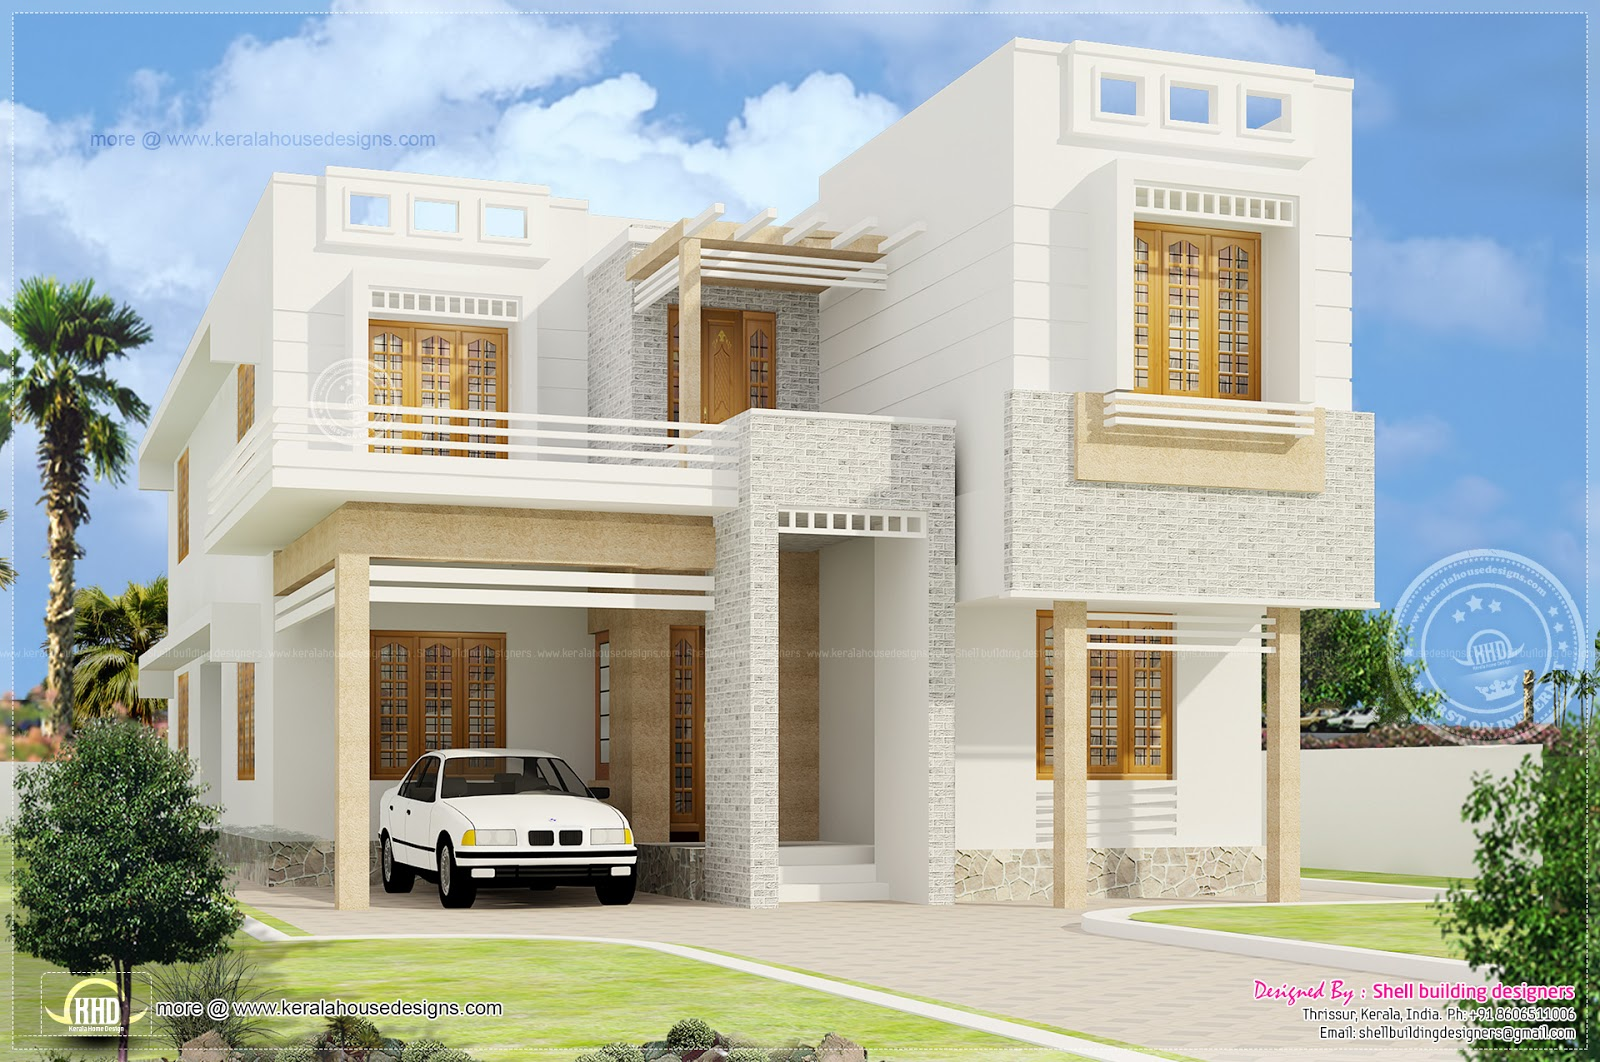 Beautiful 4 bedroom house exterior elevation kerala home design and floor plans - Home house design ...